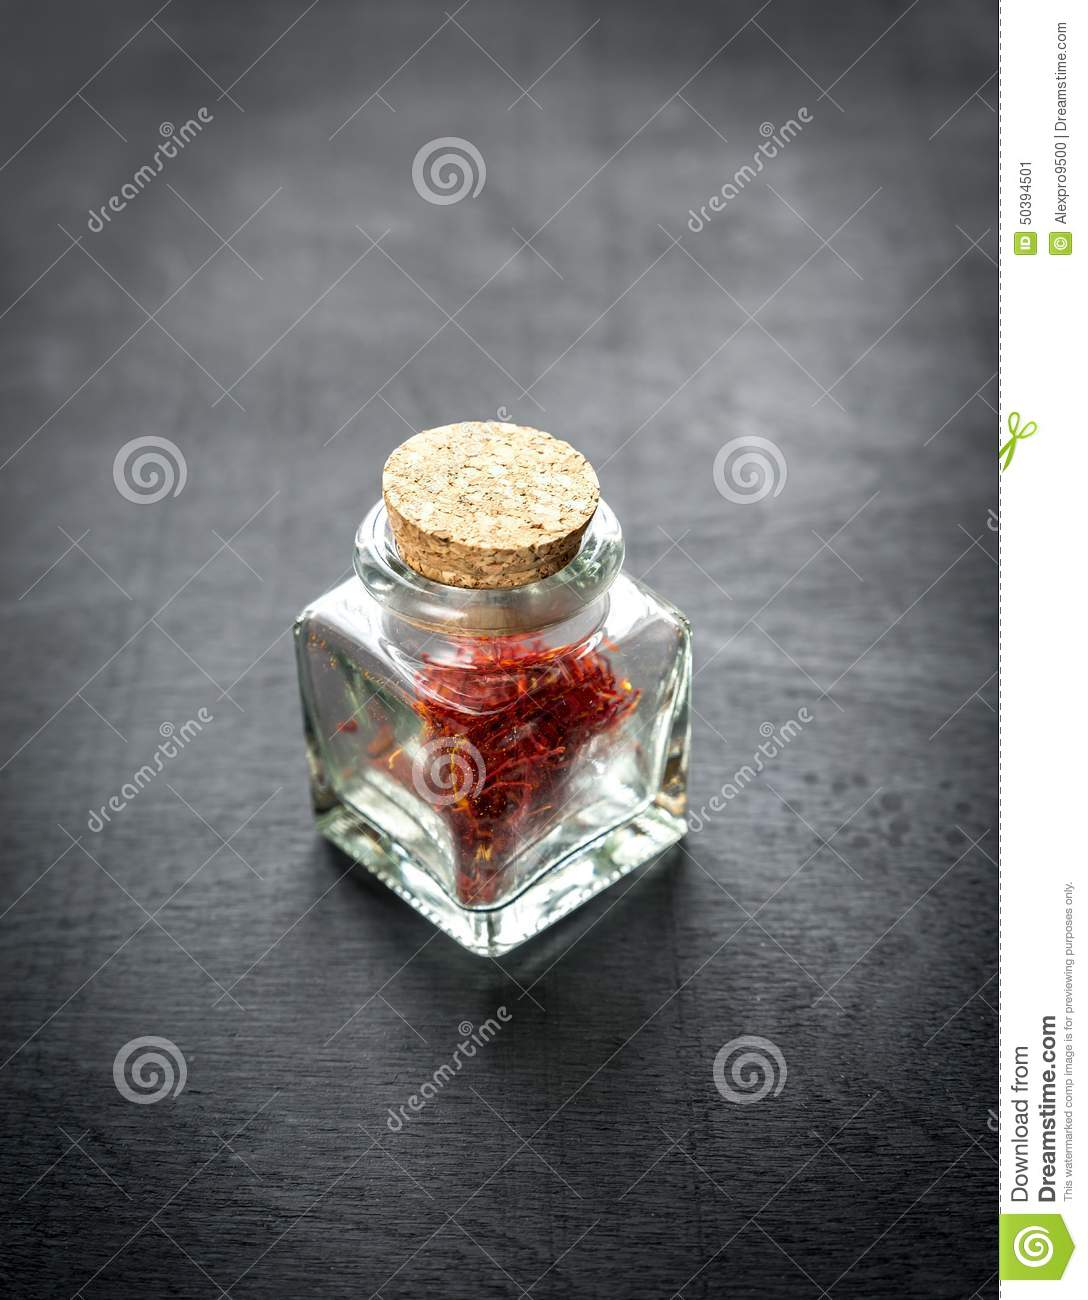 Cuisines Vial Saffron In The Vial Stock Image Image Of Flacon Black 50394501